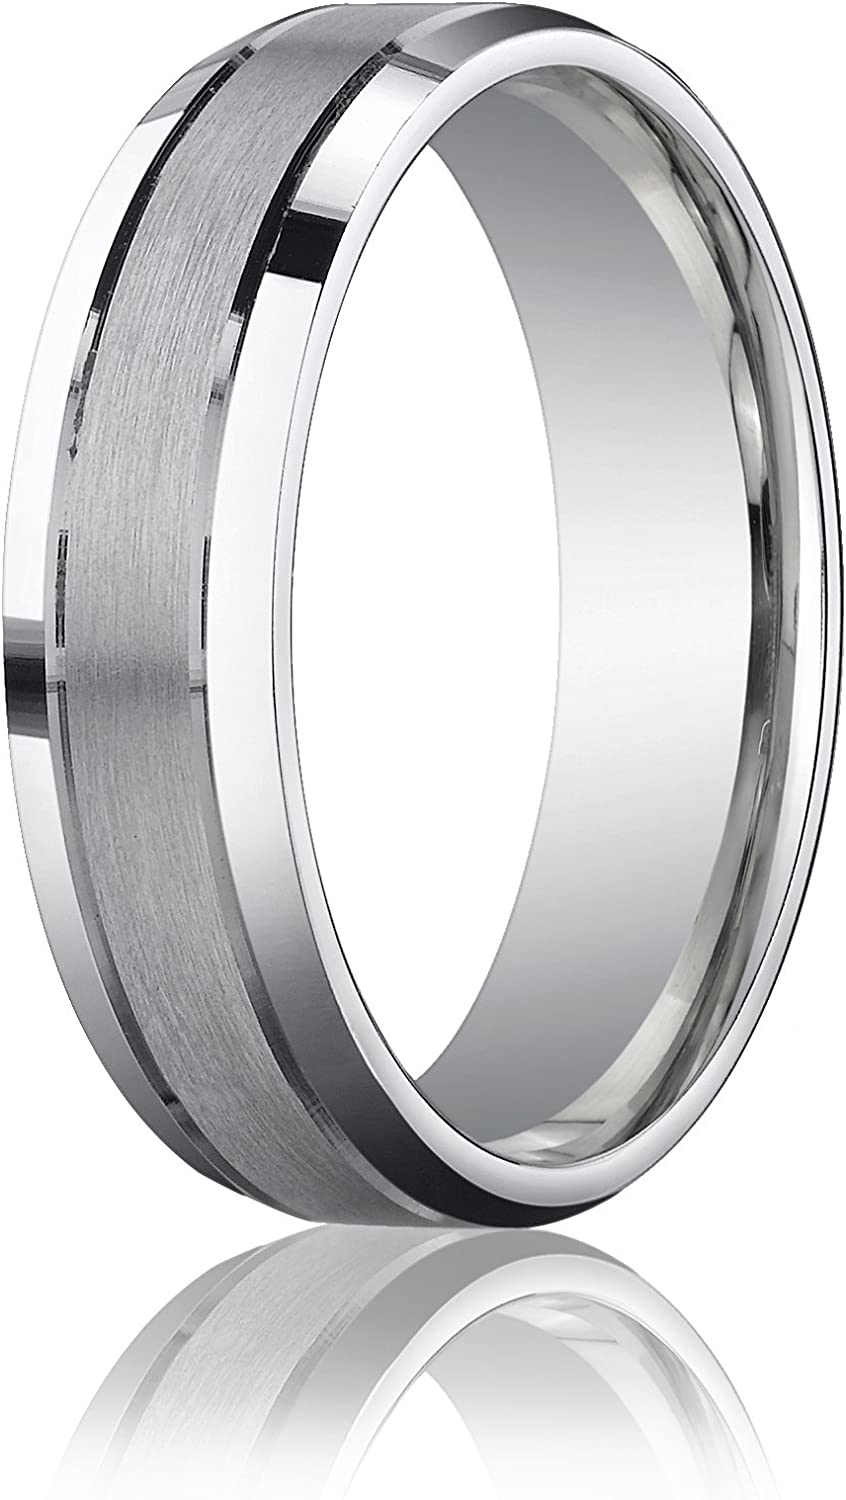 Mens 10K White Gold 6mm Comfort Fit Satin Inlay Polished Edge Wedding Band Ring